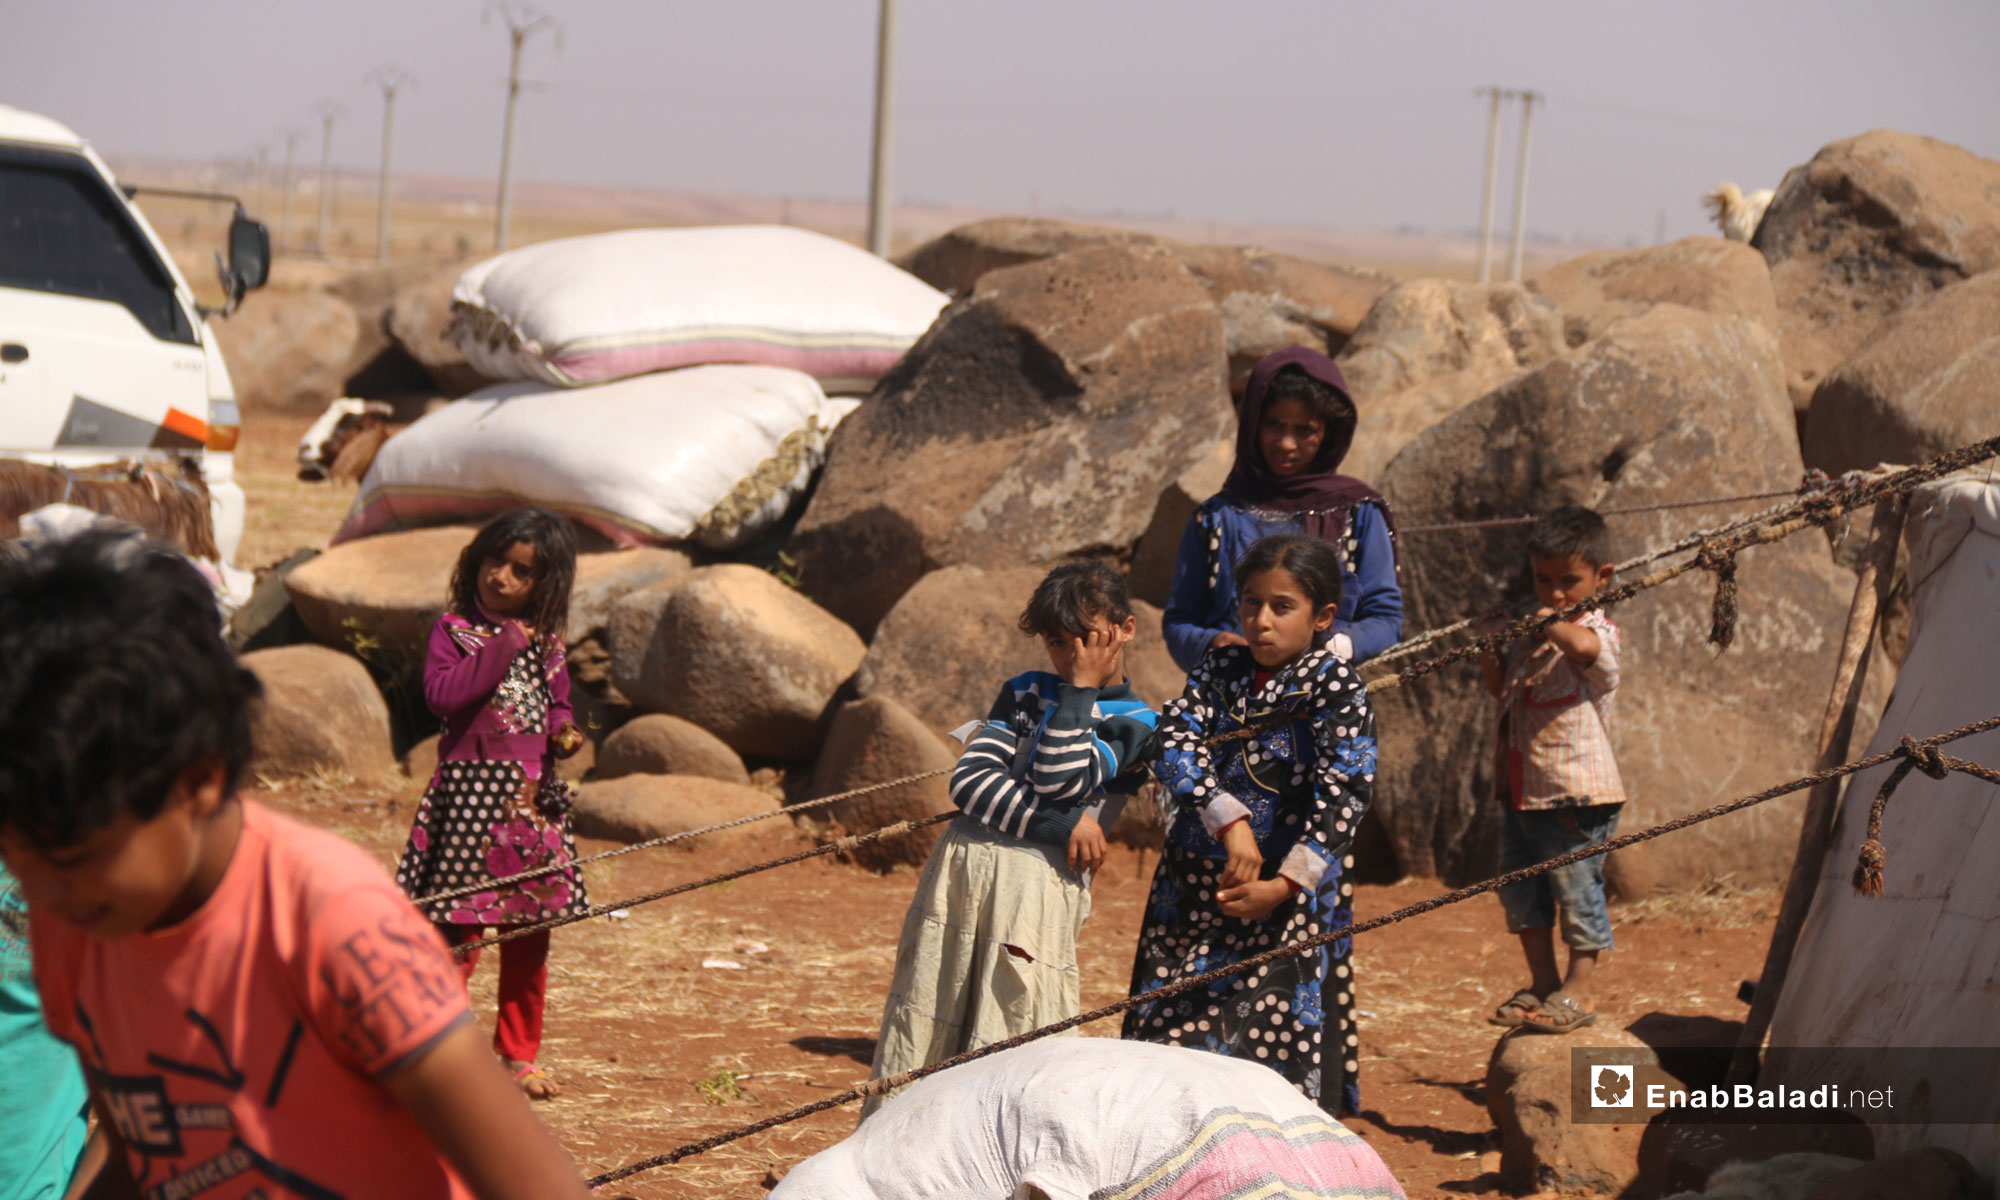 Children displaced from rural Idlib due to shelling to the town of Sarman near the Turkish supervision point in Idlib – September 12, 2018 (Enab Baladi)